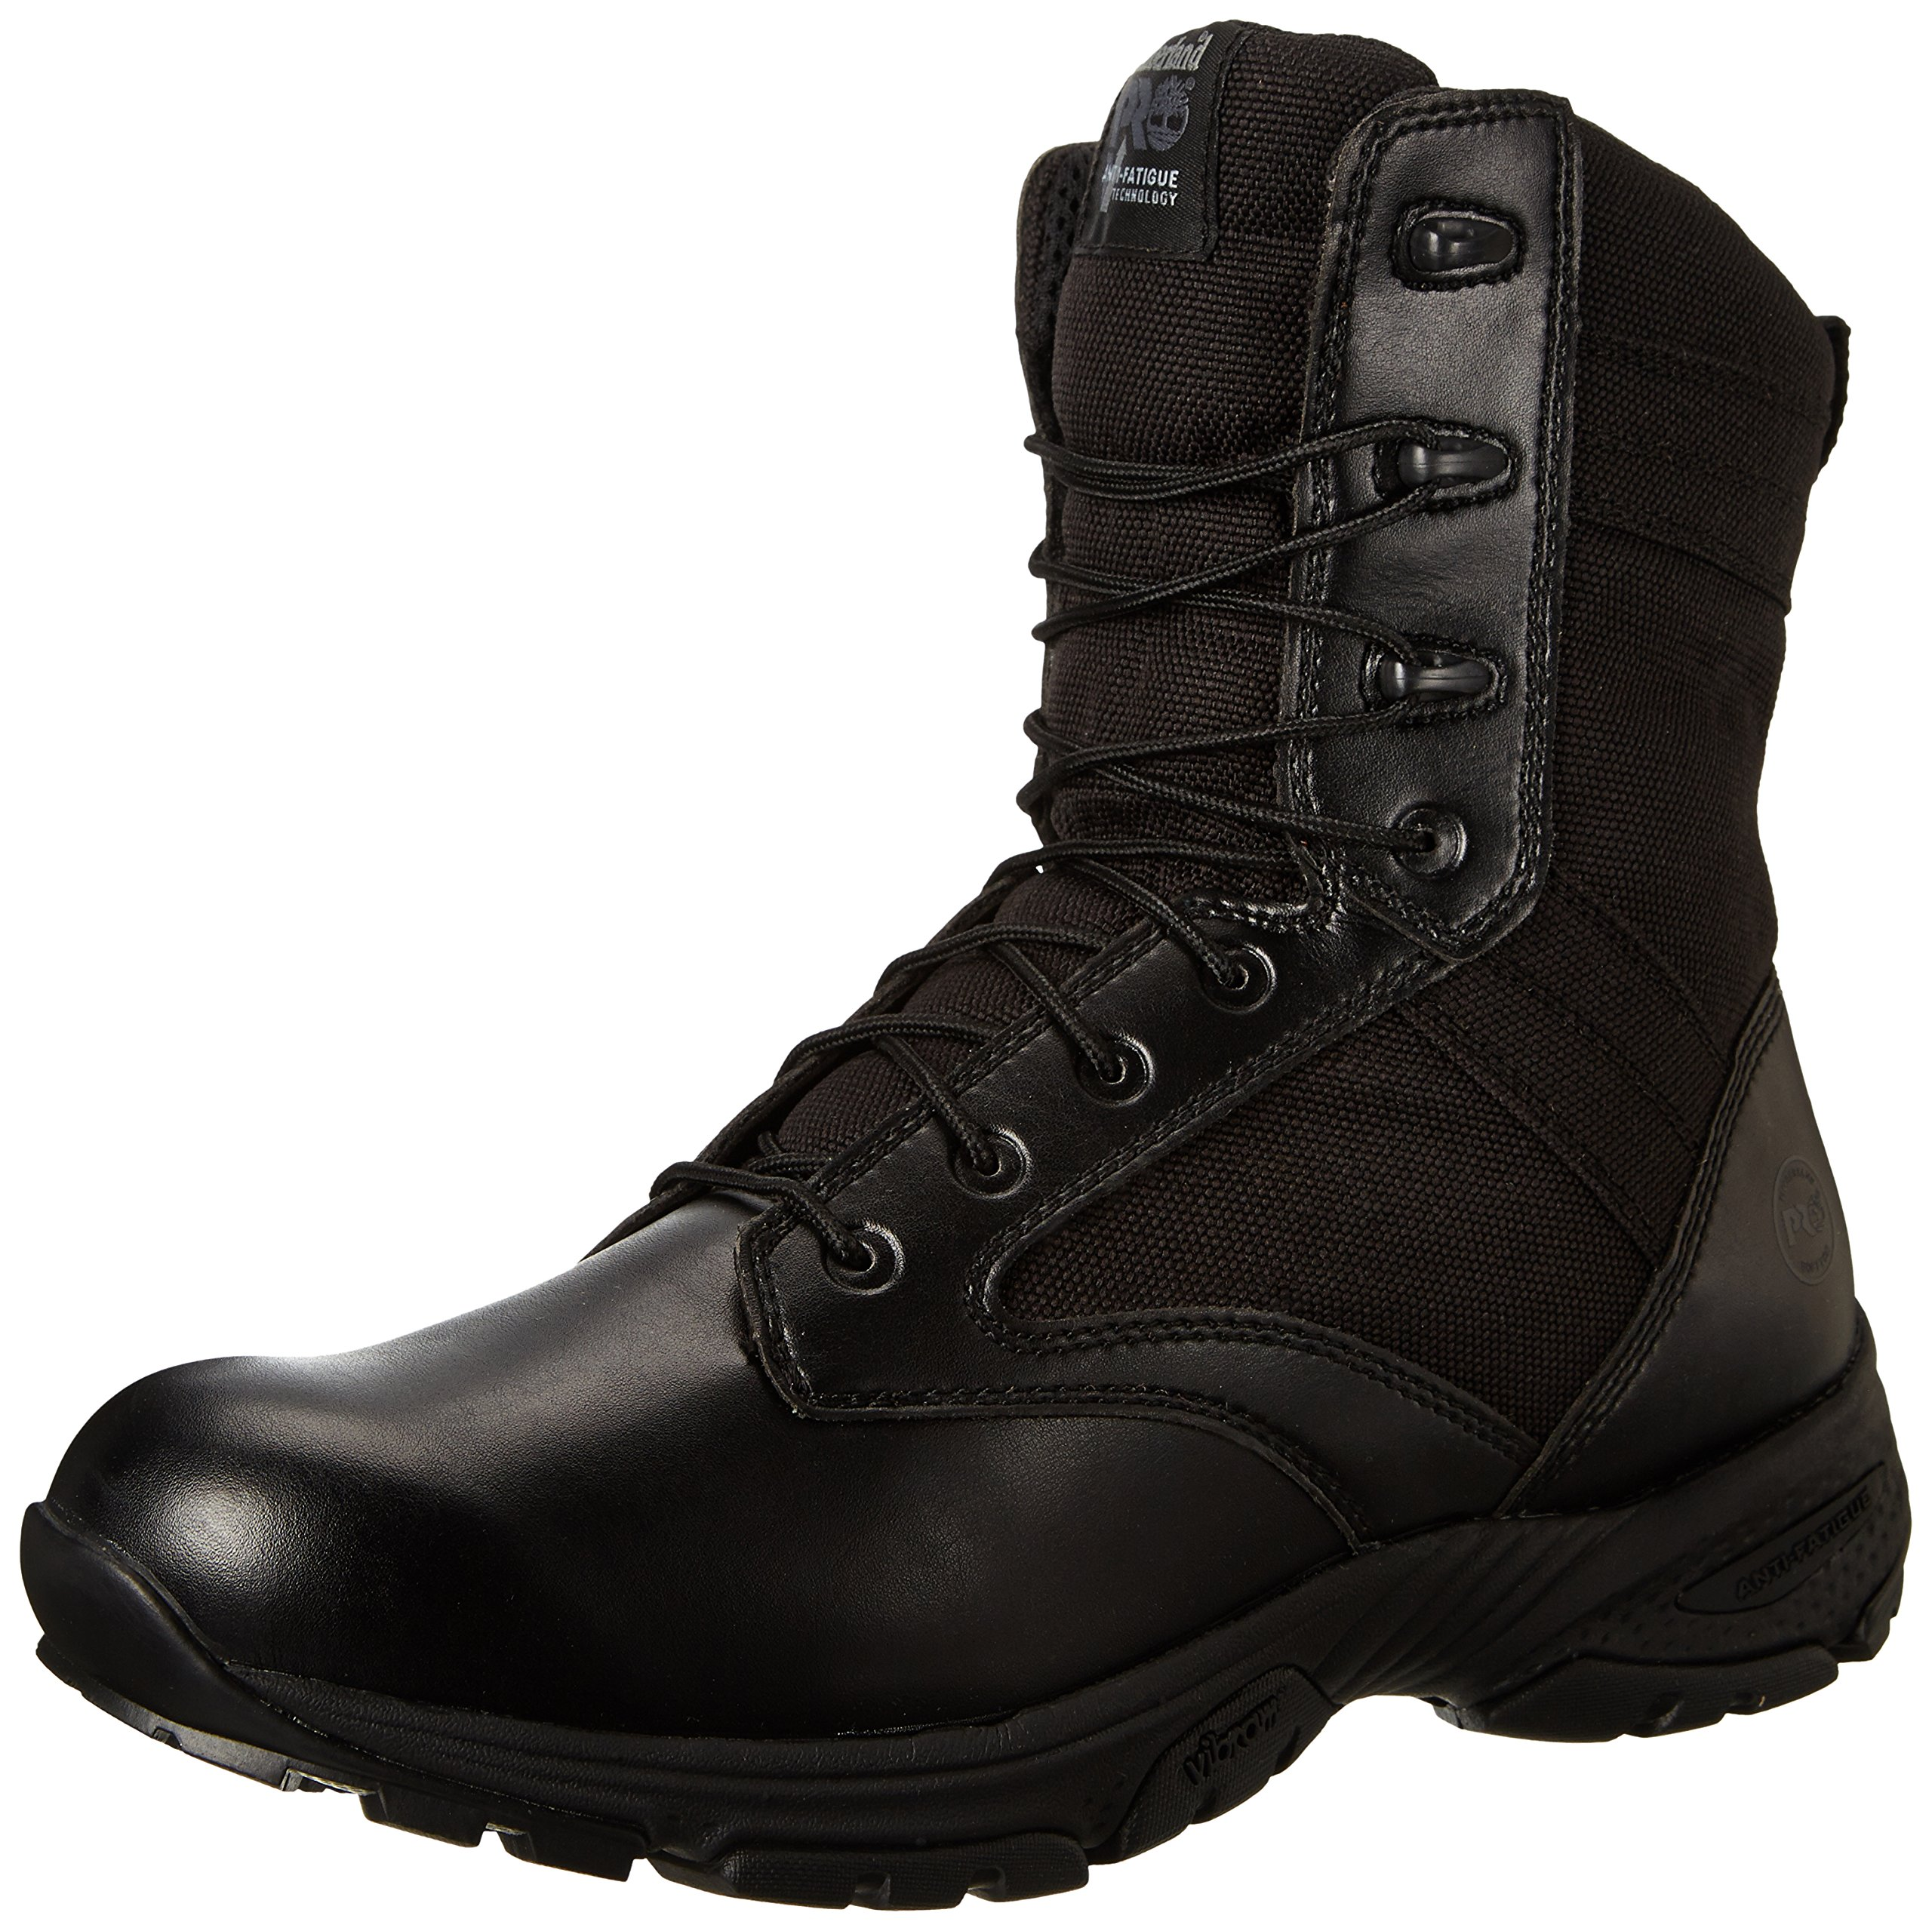 Timberland PRO Men's 8 Inch Valor Soft Toe Black Duty Boot,Black Smooth With Textile,10 W US